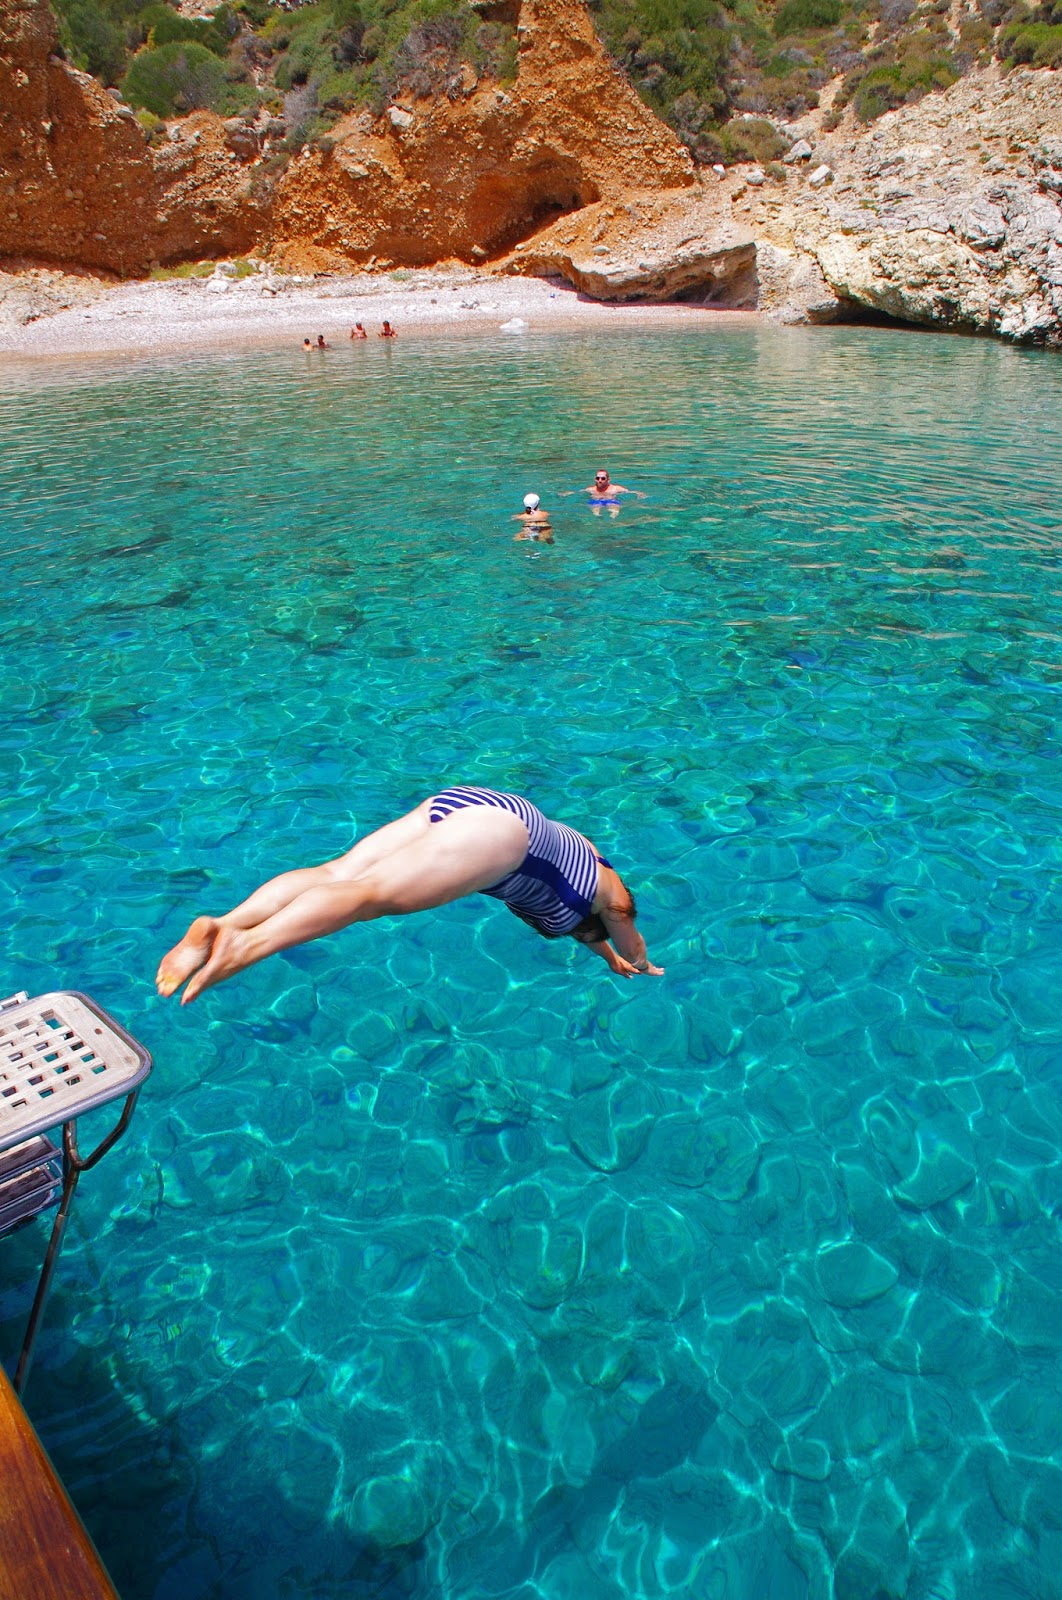 Diving into Stunning water sailing in Turkey